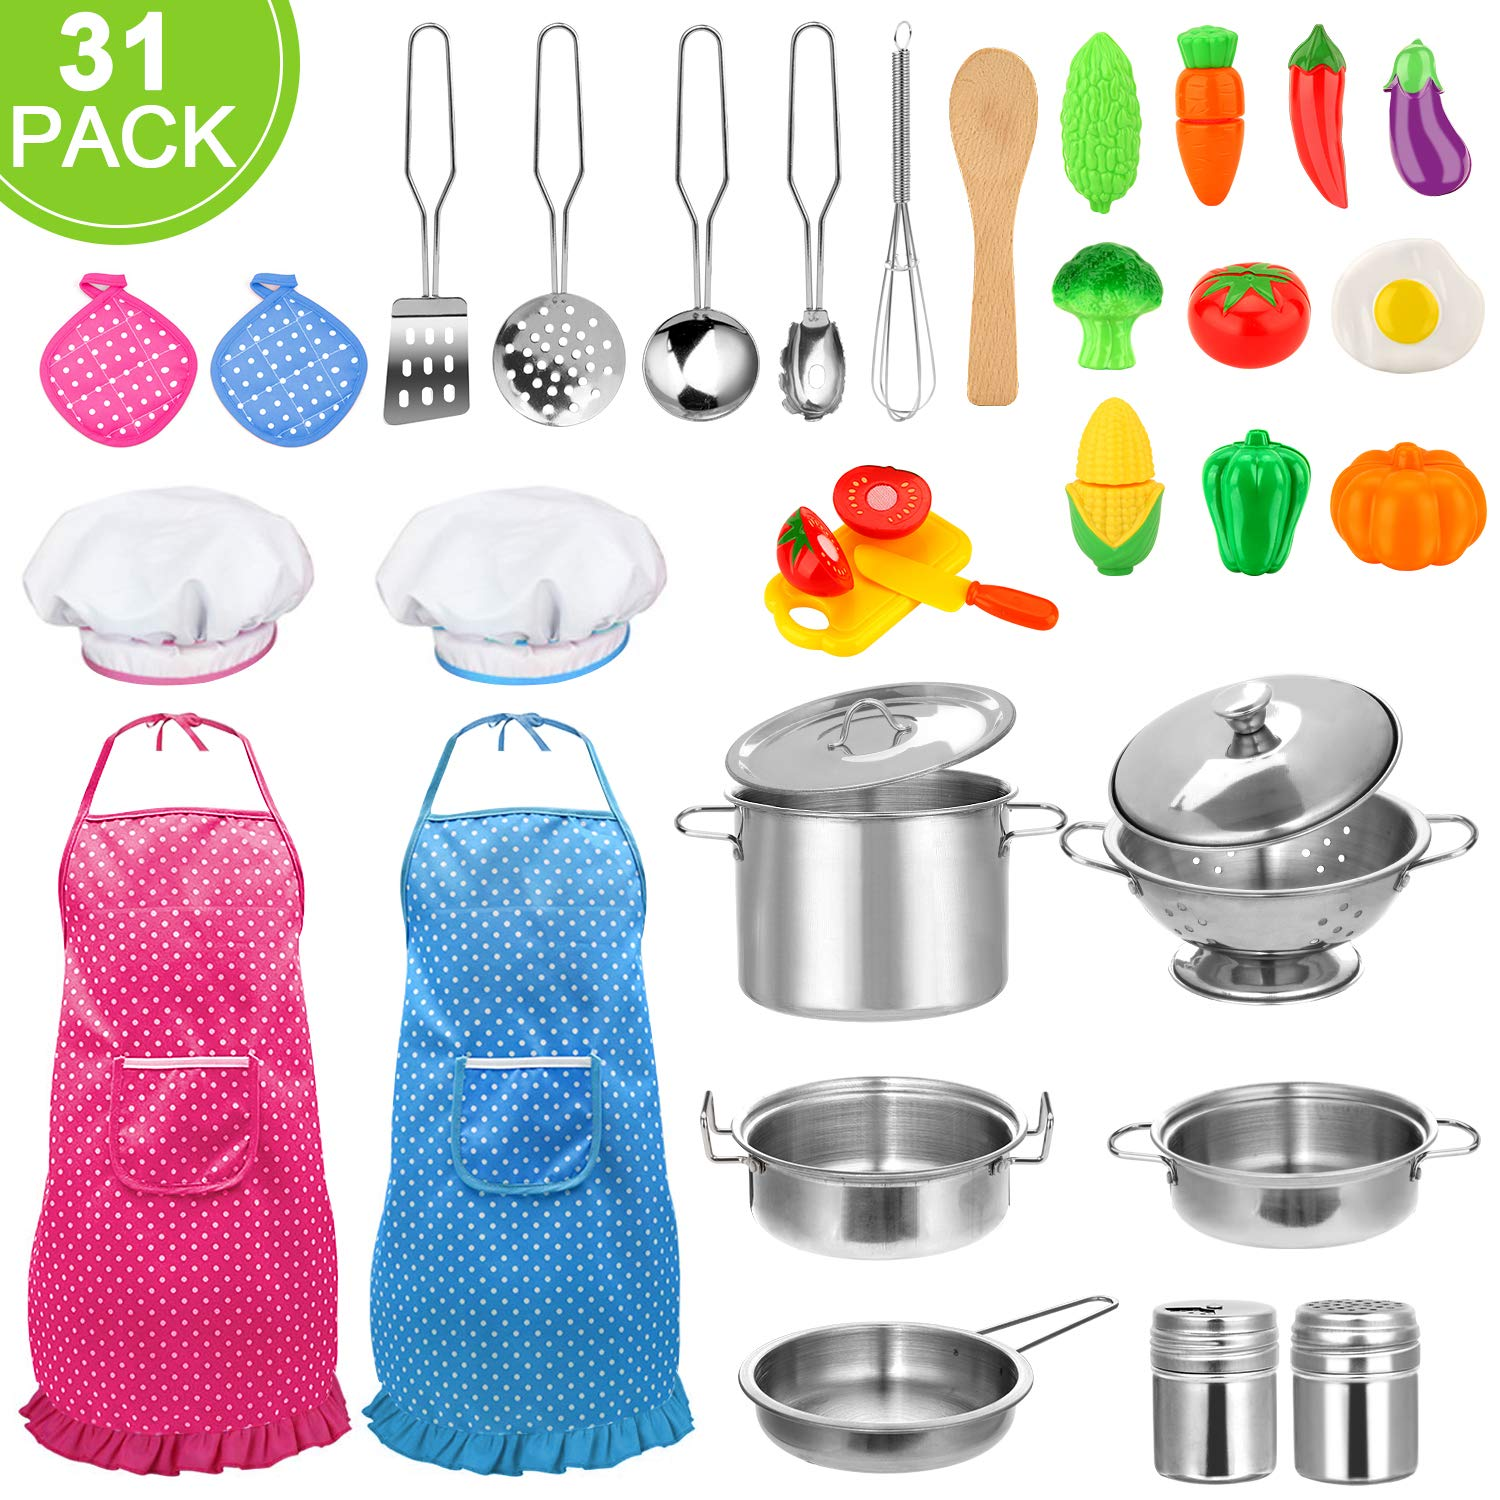 31pcs Kids Kitchen Pretend Play Toys Toy Kitchen Set with Stainless Steel Cooking Utensils Cookware Pots and Pans Set Healthy Vegetables, Knife, Little Chef for Toddlers & Children Boys Girls by CHAREADA